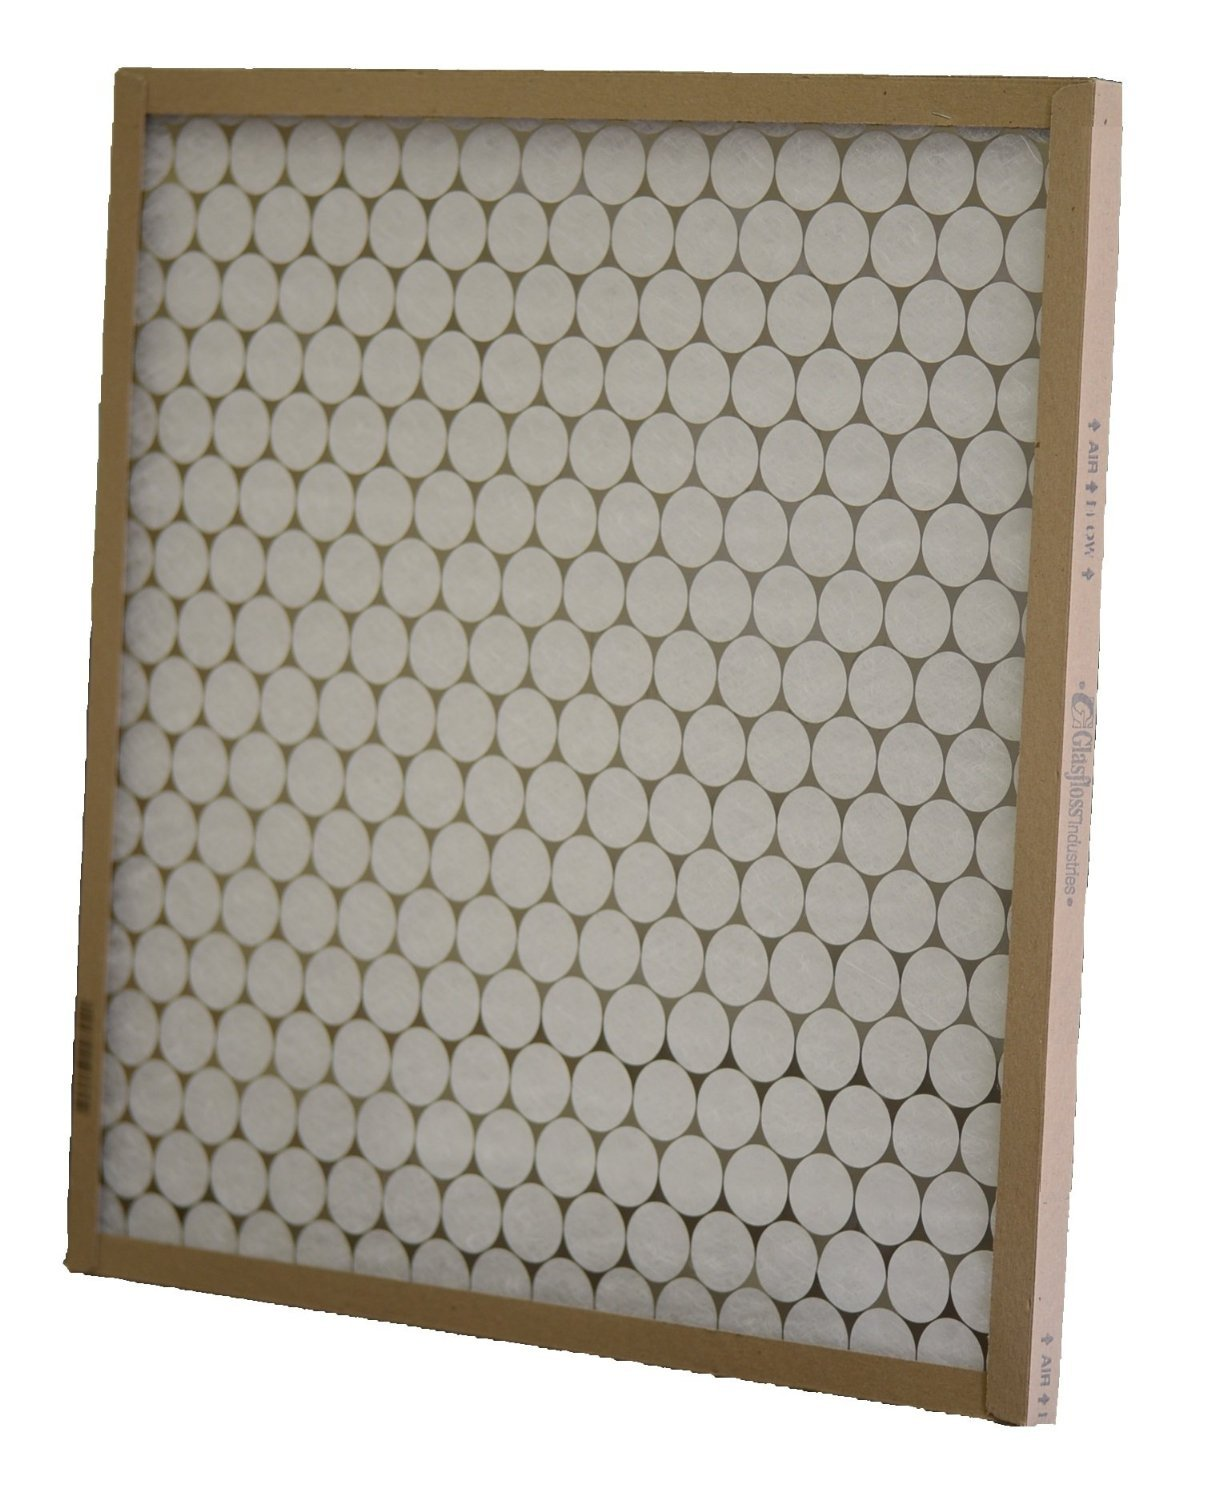 Glasfloss Industries PTA14181 PTA Series Heavy Duty Disposable Panel Air Filter, 12-Case by Glasfloss Industries